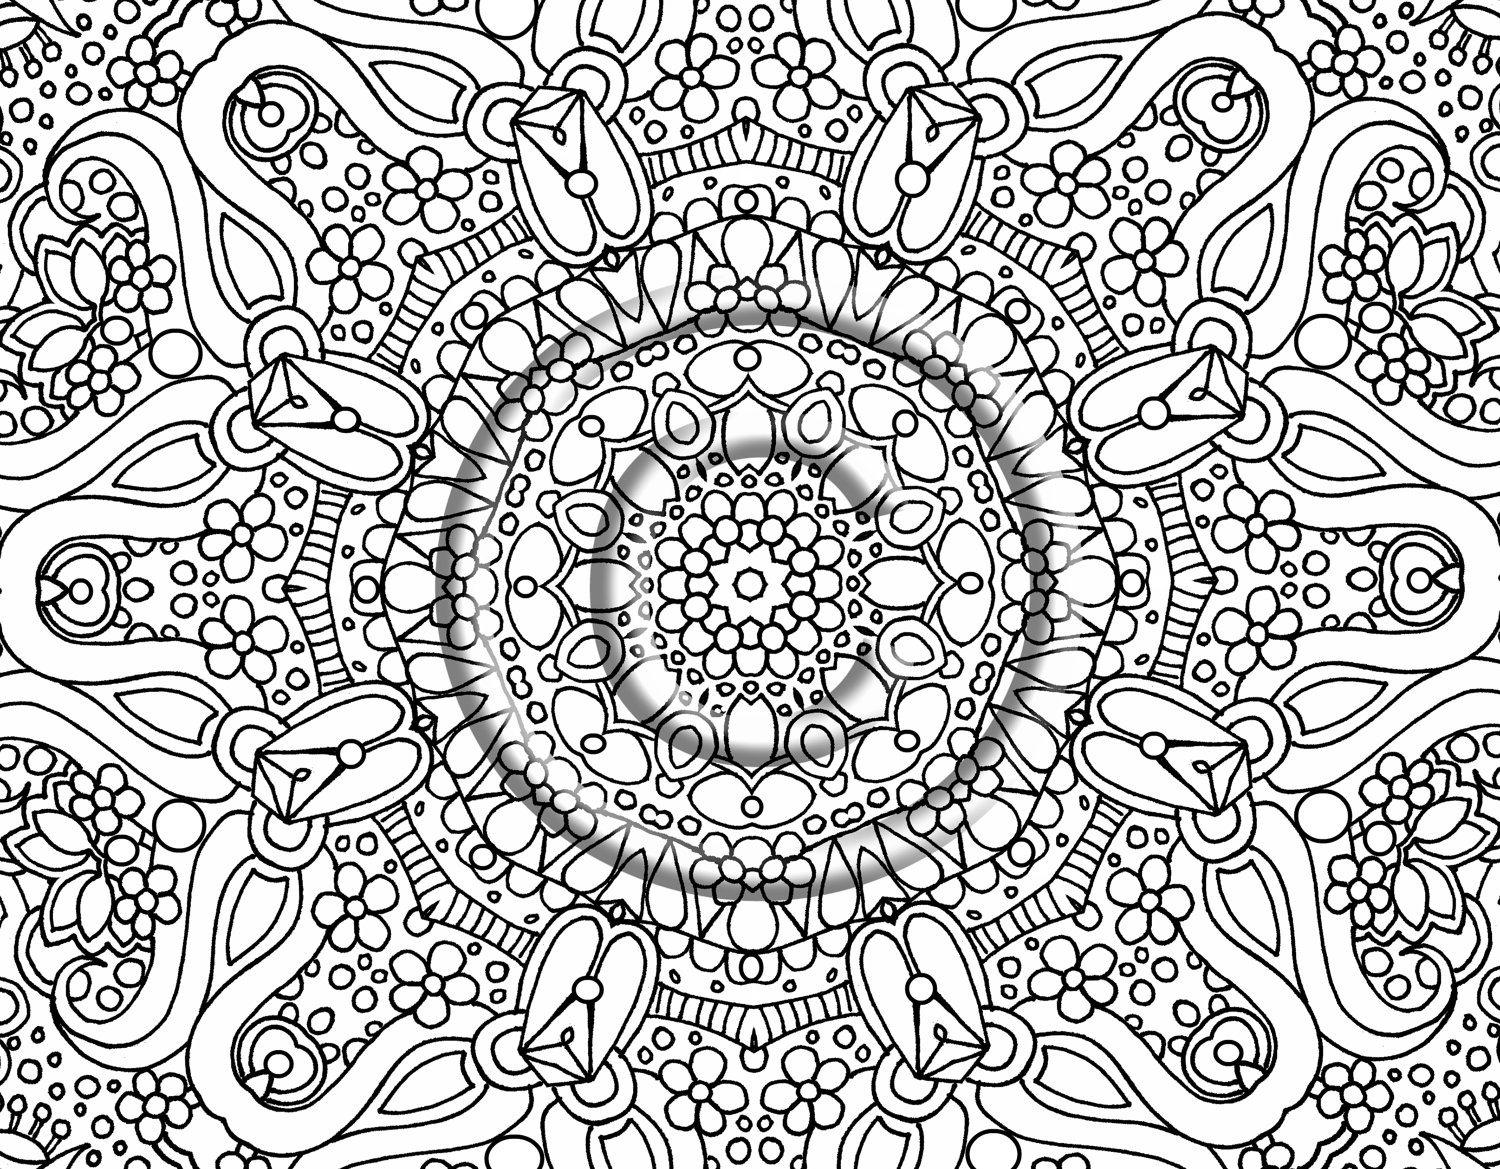 1500x1169 Coloring Pages For Adults Abstract Flowers Collection Free